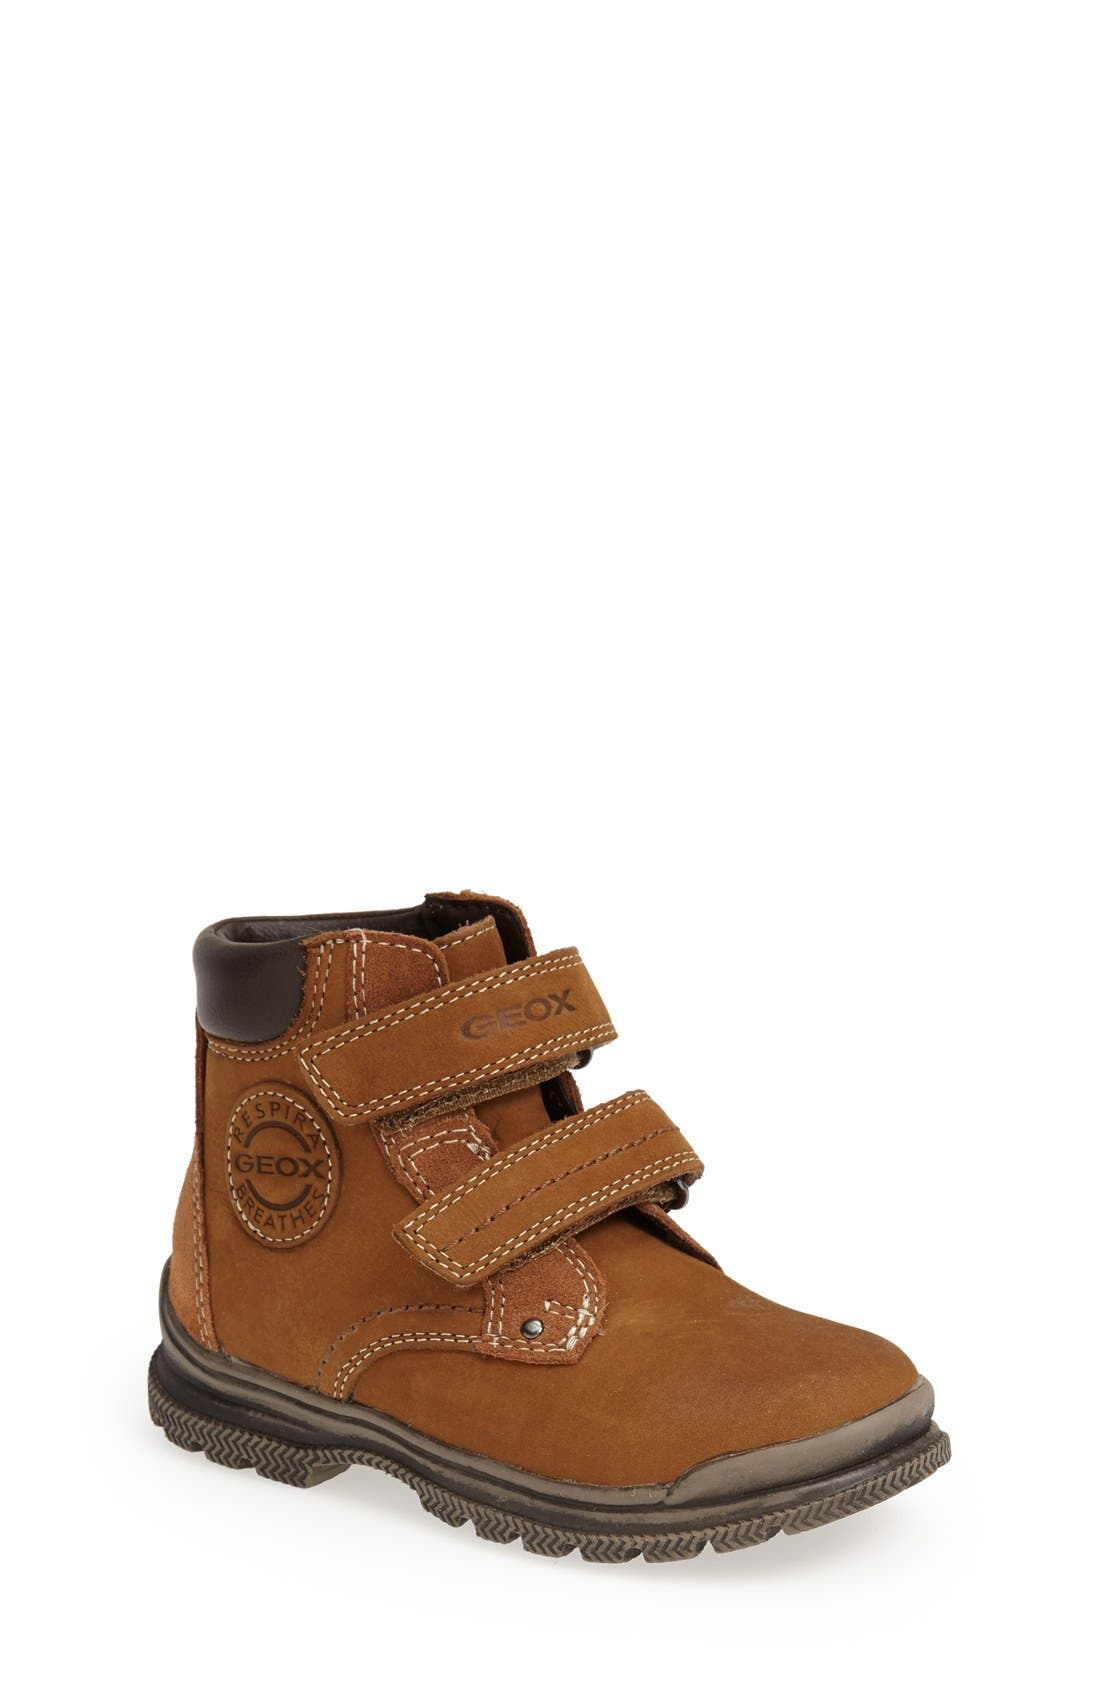 Alternate Image 1 Selected - Geox 'William 18' Boot (Toddler, Little Kid & Big Kid)